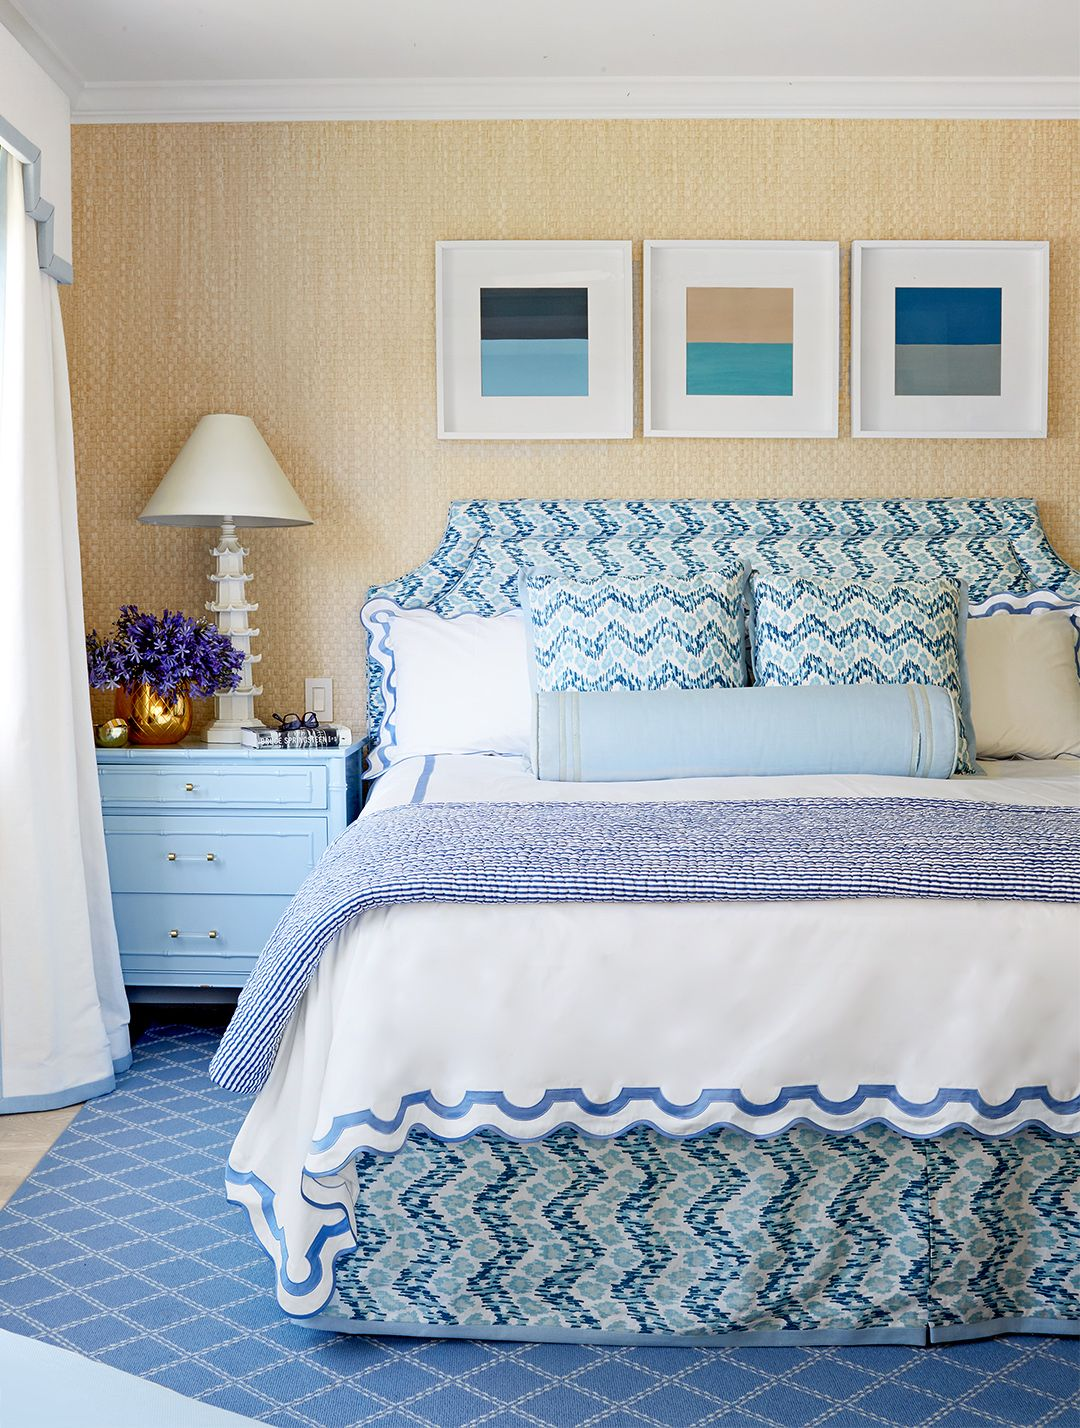 Preppy Meets Posh in This Colorful California Beach Home ...